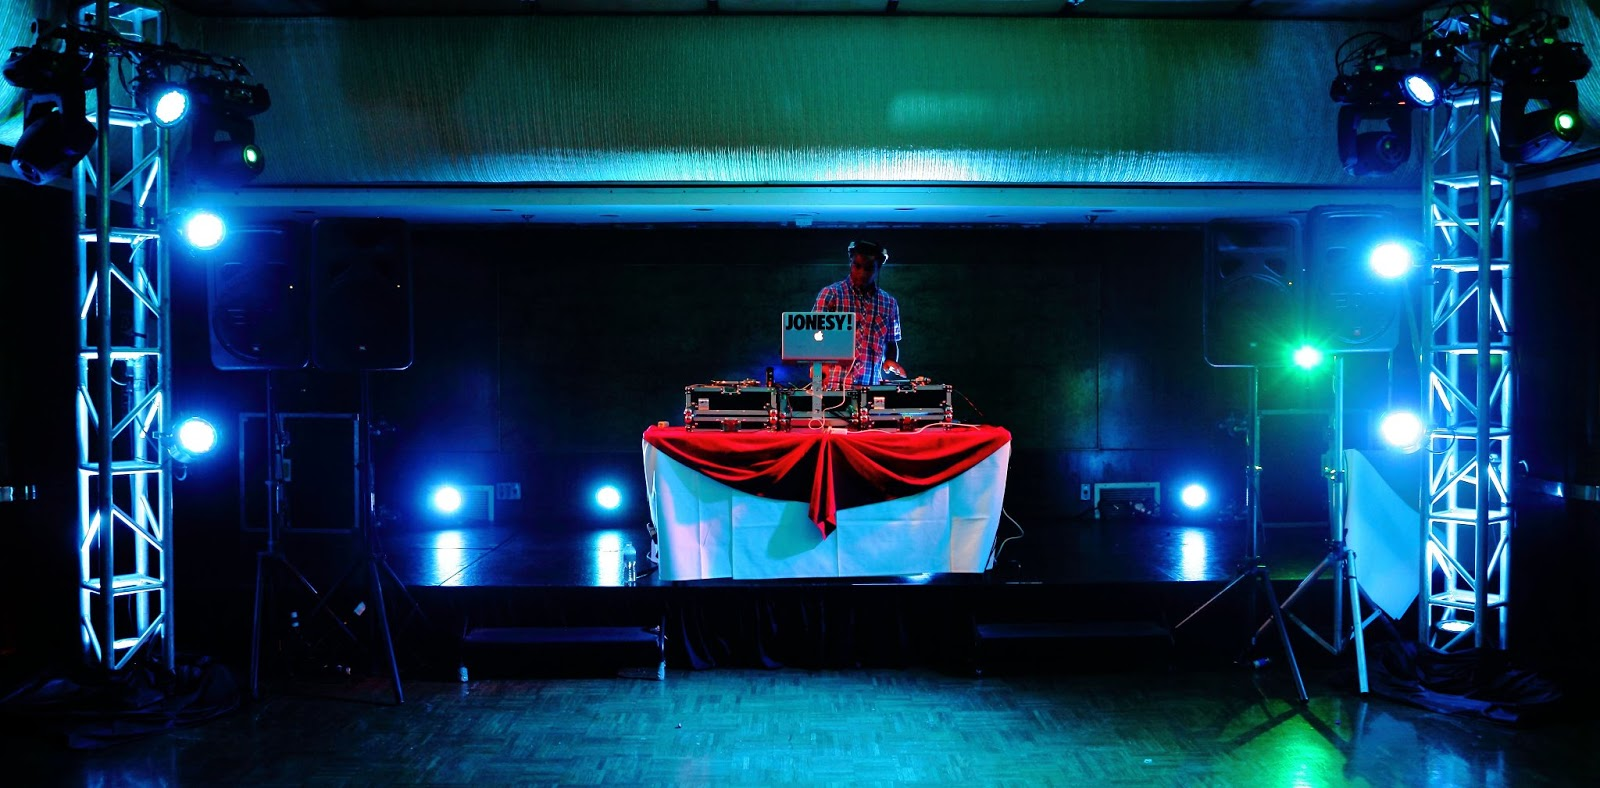 Saturday, June 23rd I am honored to be the featured DJ at the 2012 Lumen Awards West Banquet   Illuminating Engineering Society   taking place on the gorgeous   Queen Mary   Ship  in Long Beach, CA.  The ceremony commemorates all the best lighting designers of the West Coast for their expertise.  Very excited to be a part of this event.    Californiaaaa.  Knows how to parrrttyyy